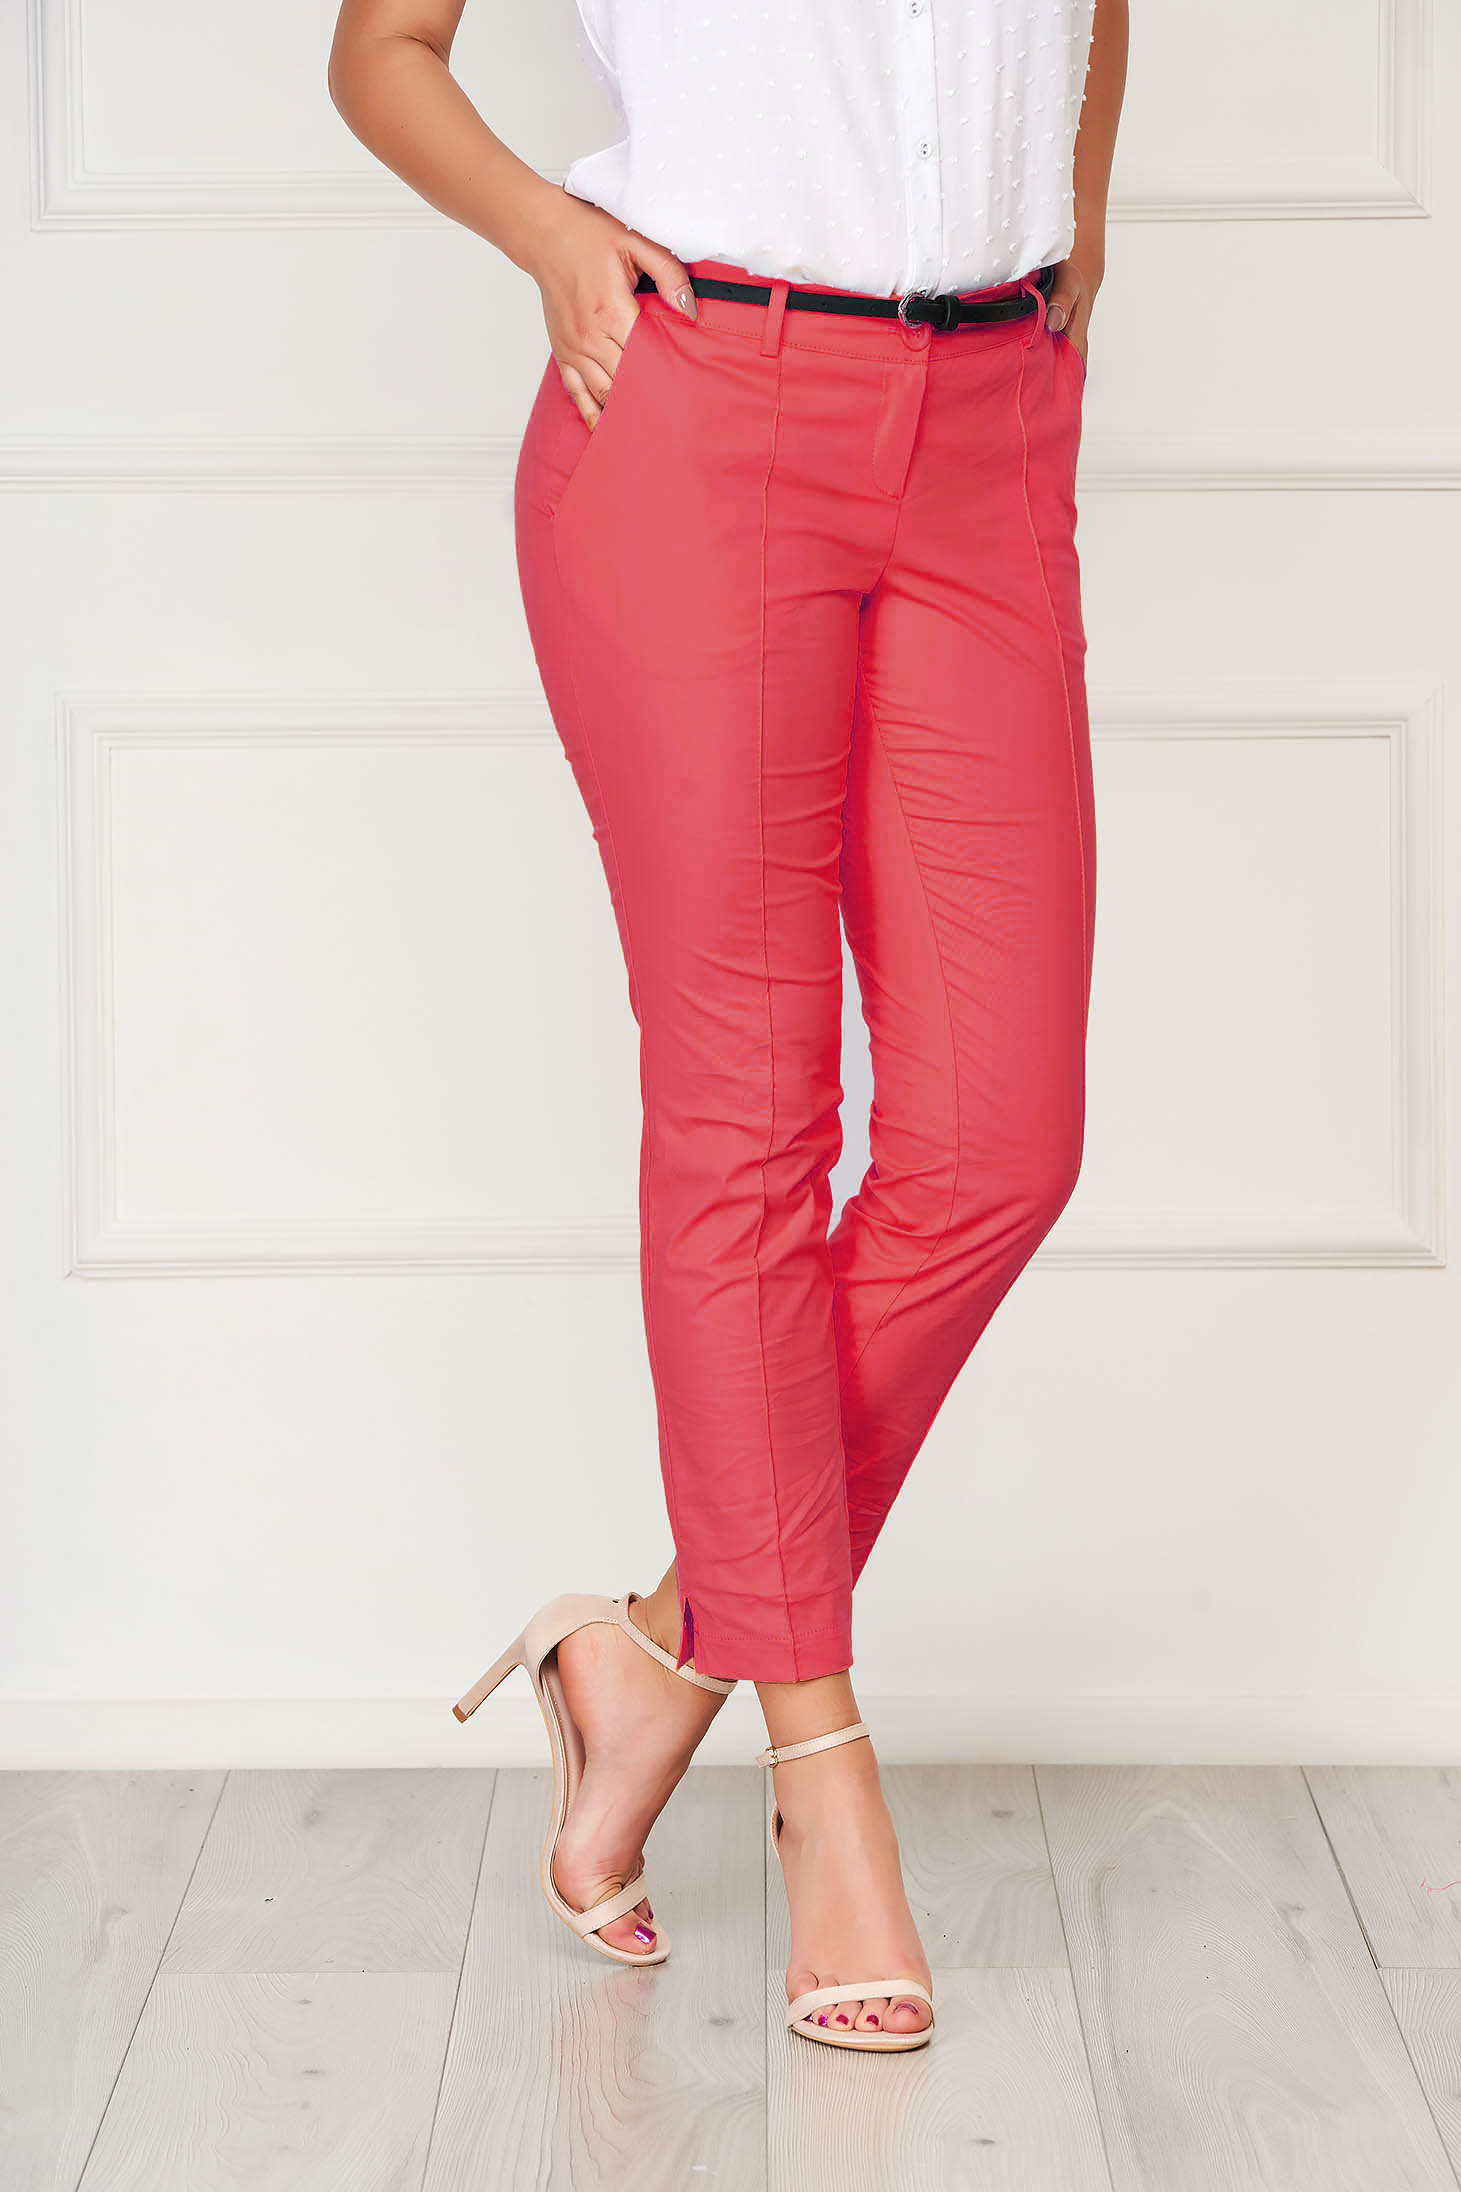 Pink trousers office cotton conical with pockets